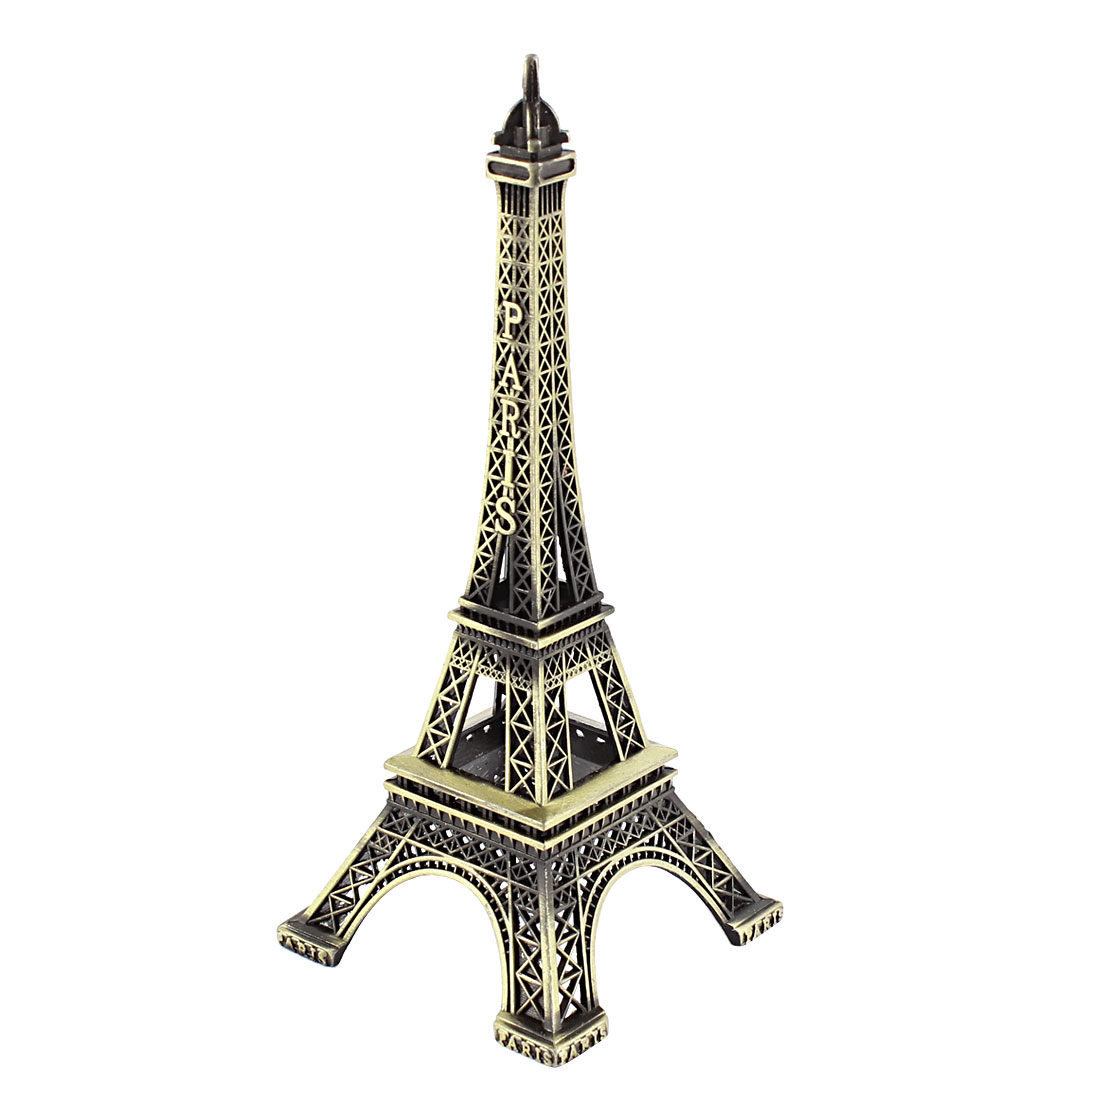 Metal France Paris Eiffel Tower Stand Model Miniature Table Decor 15cm High